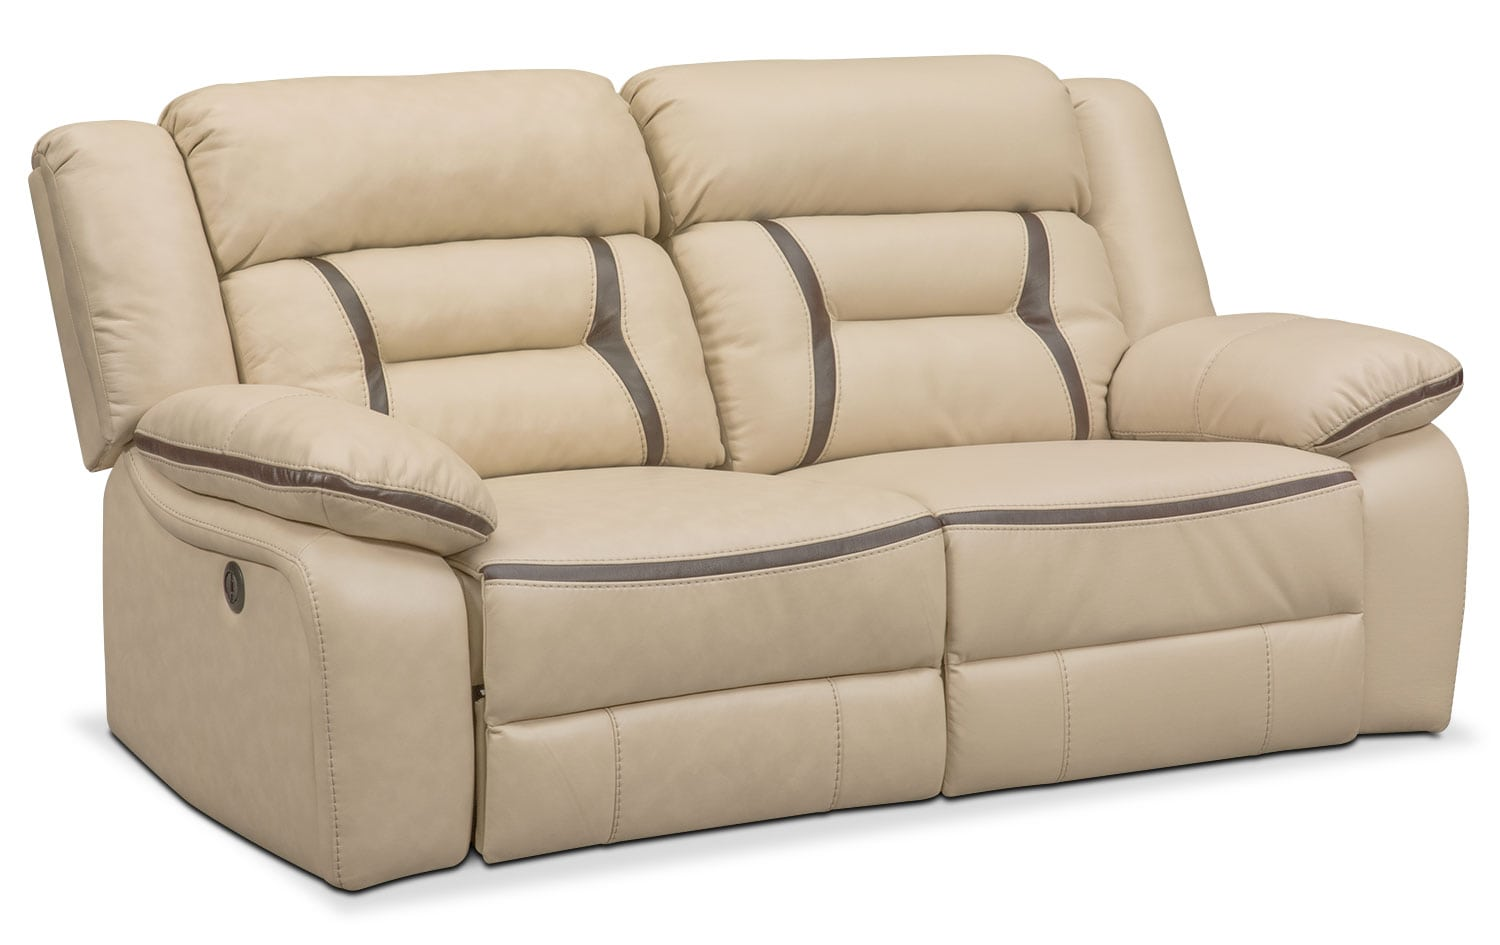 Living Room Furniture - Remi 2-Piece Power Reclining Sofa - Cream